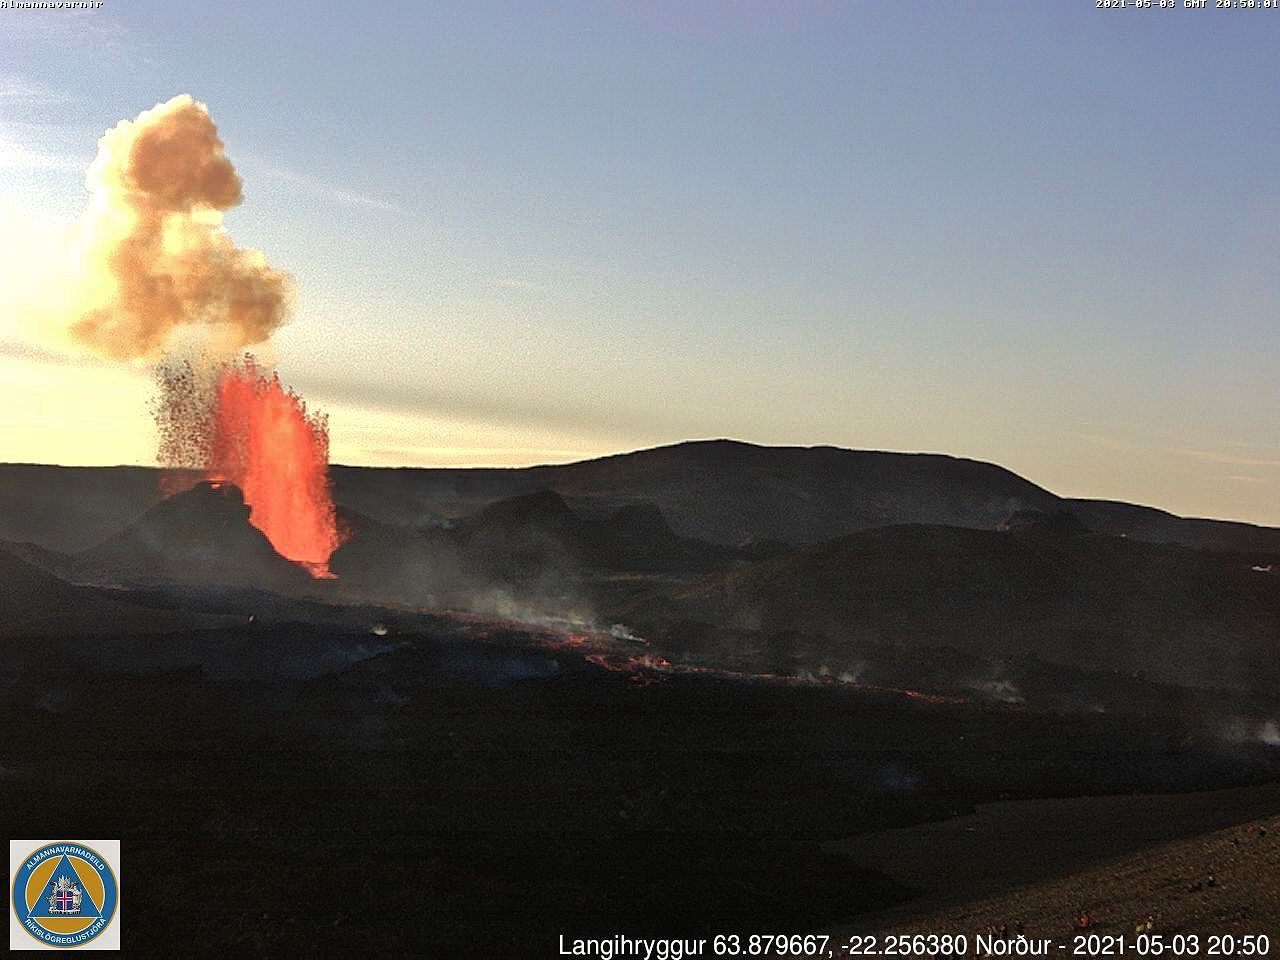 Geldingadalur - the eruptive site / vent 5 - webcam_langihryggur N on 03.05.2021, at 11:10 a.m. and 8:50 p.m. respectively.